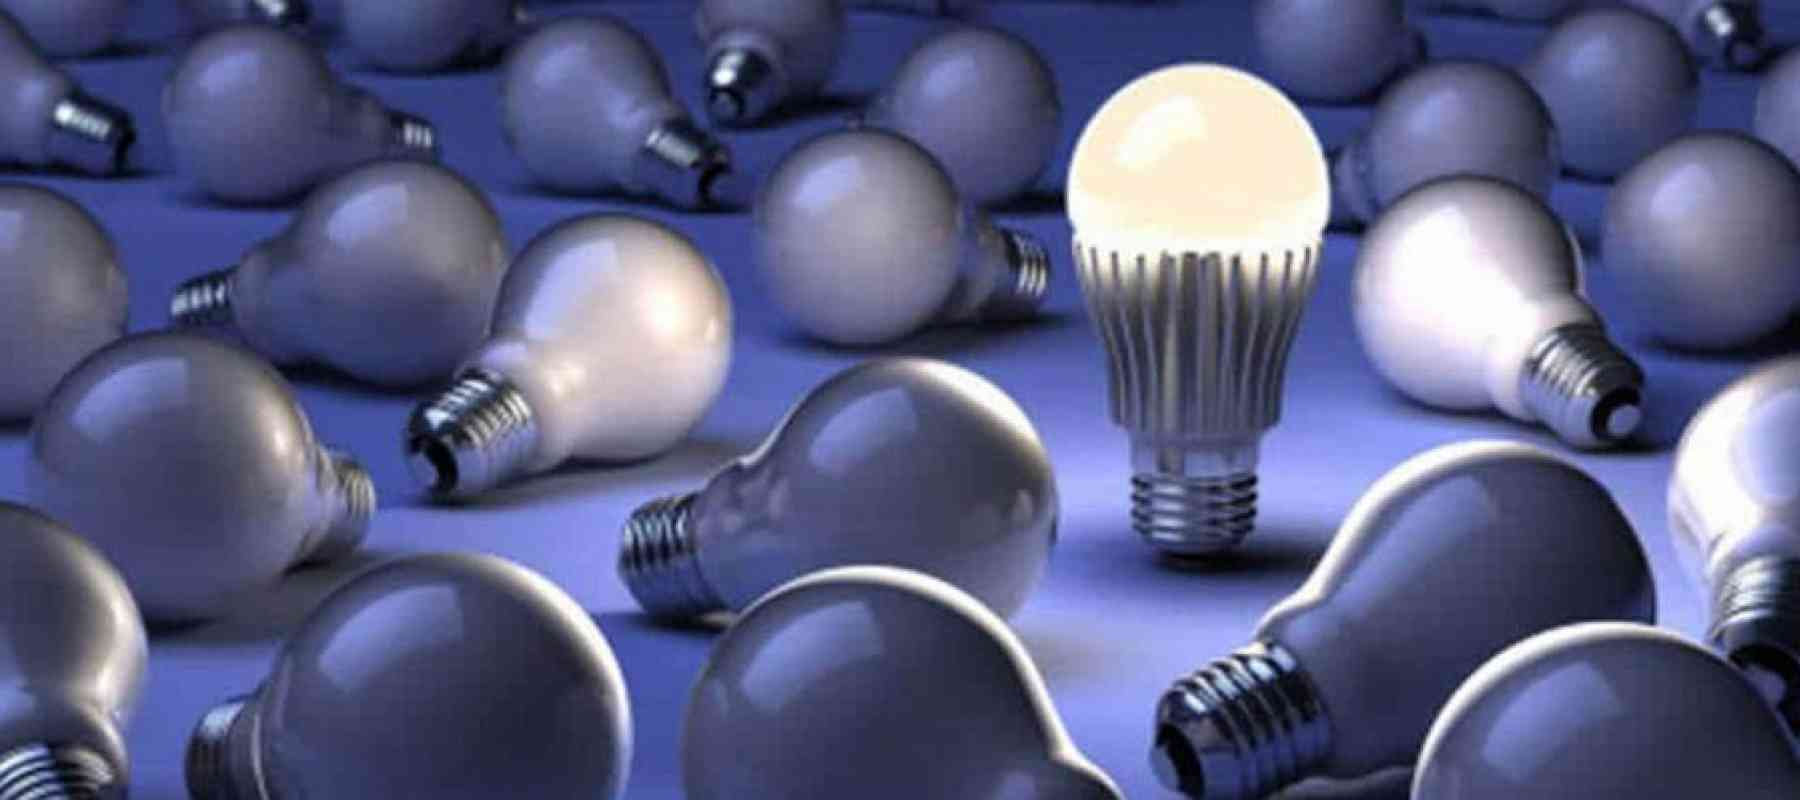 LED, Lighting the Way in Consumer Energy Products